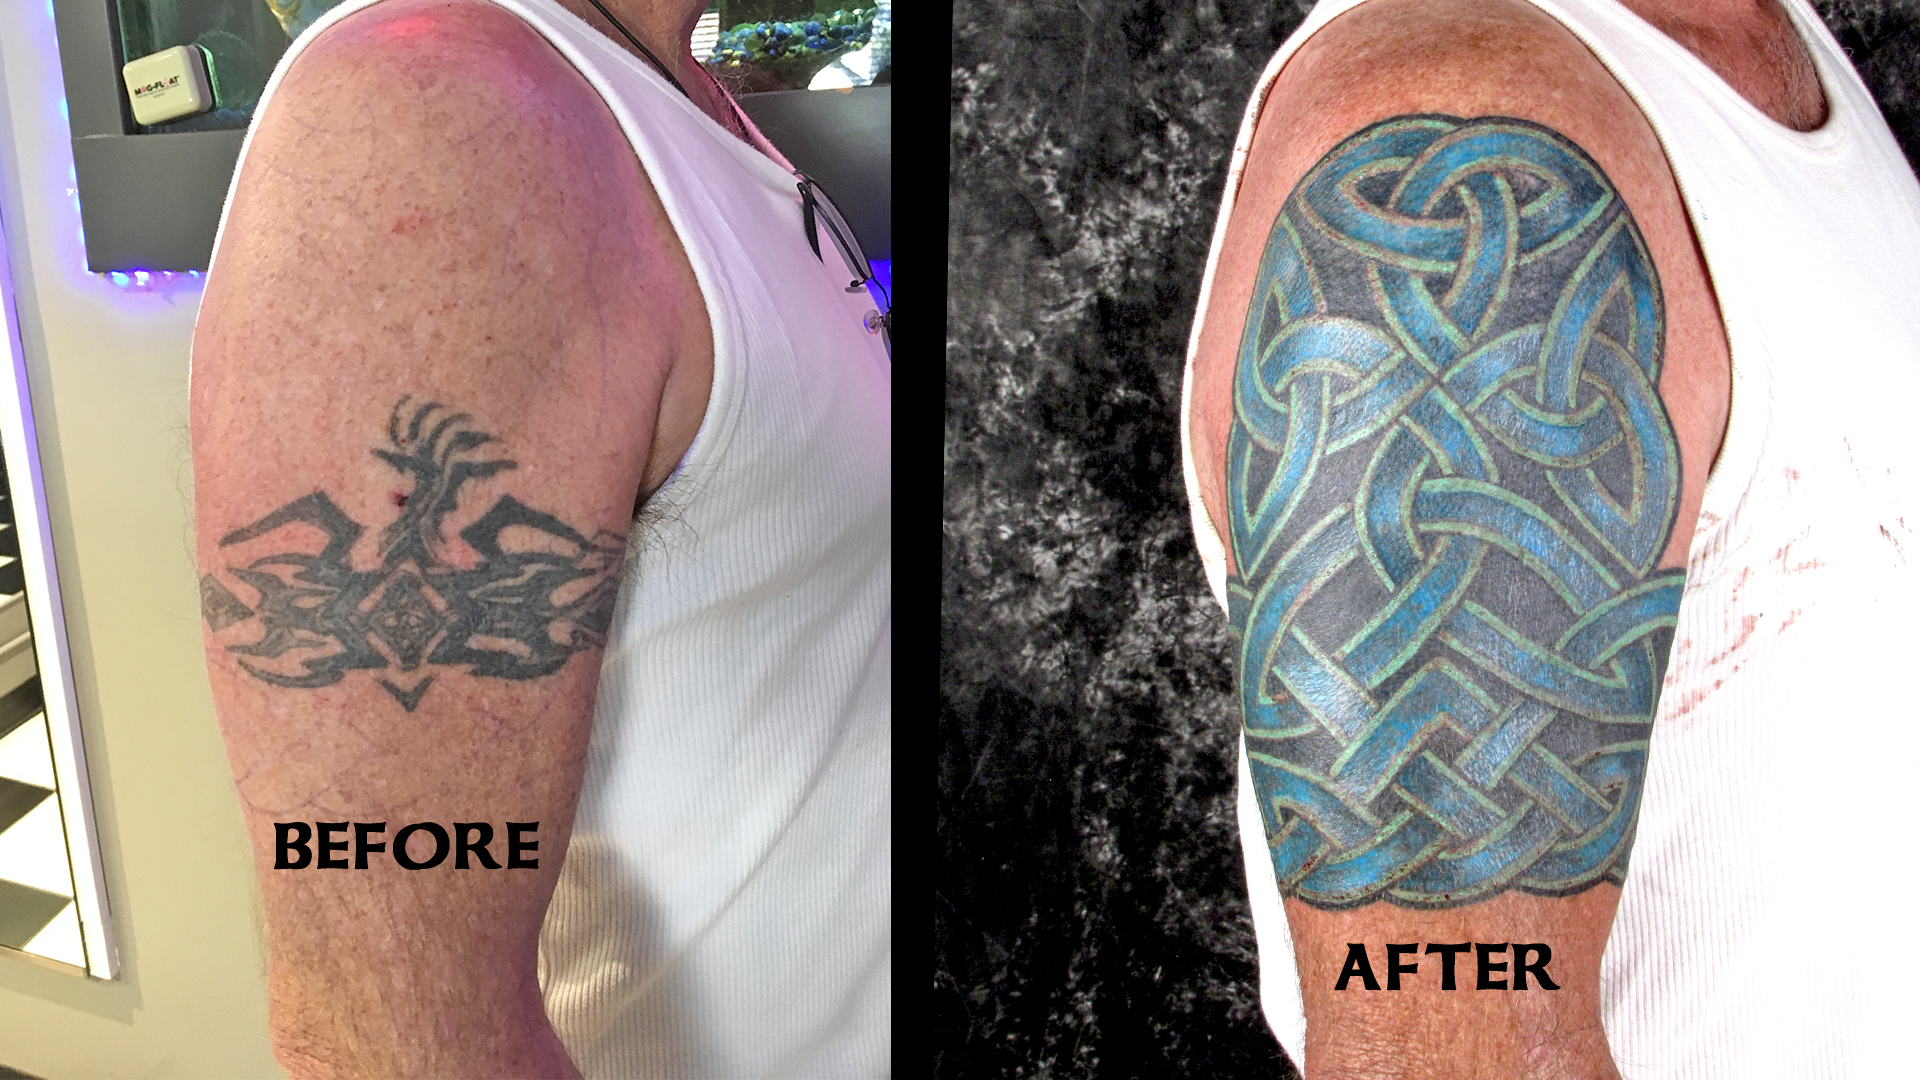 The tribal band becomes a Celtic sleeve